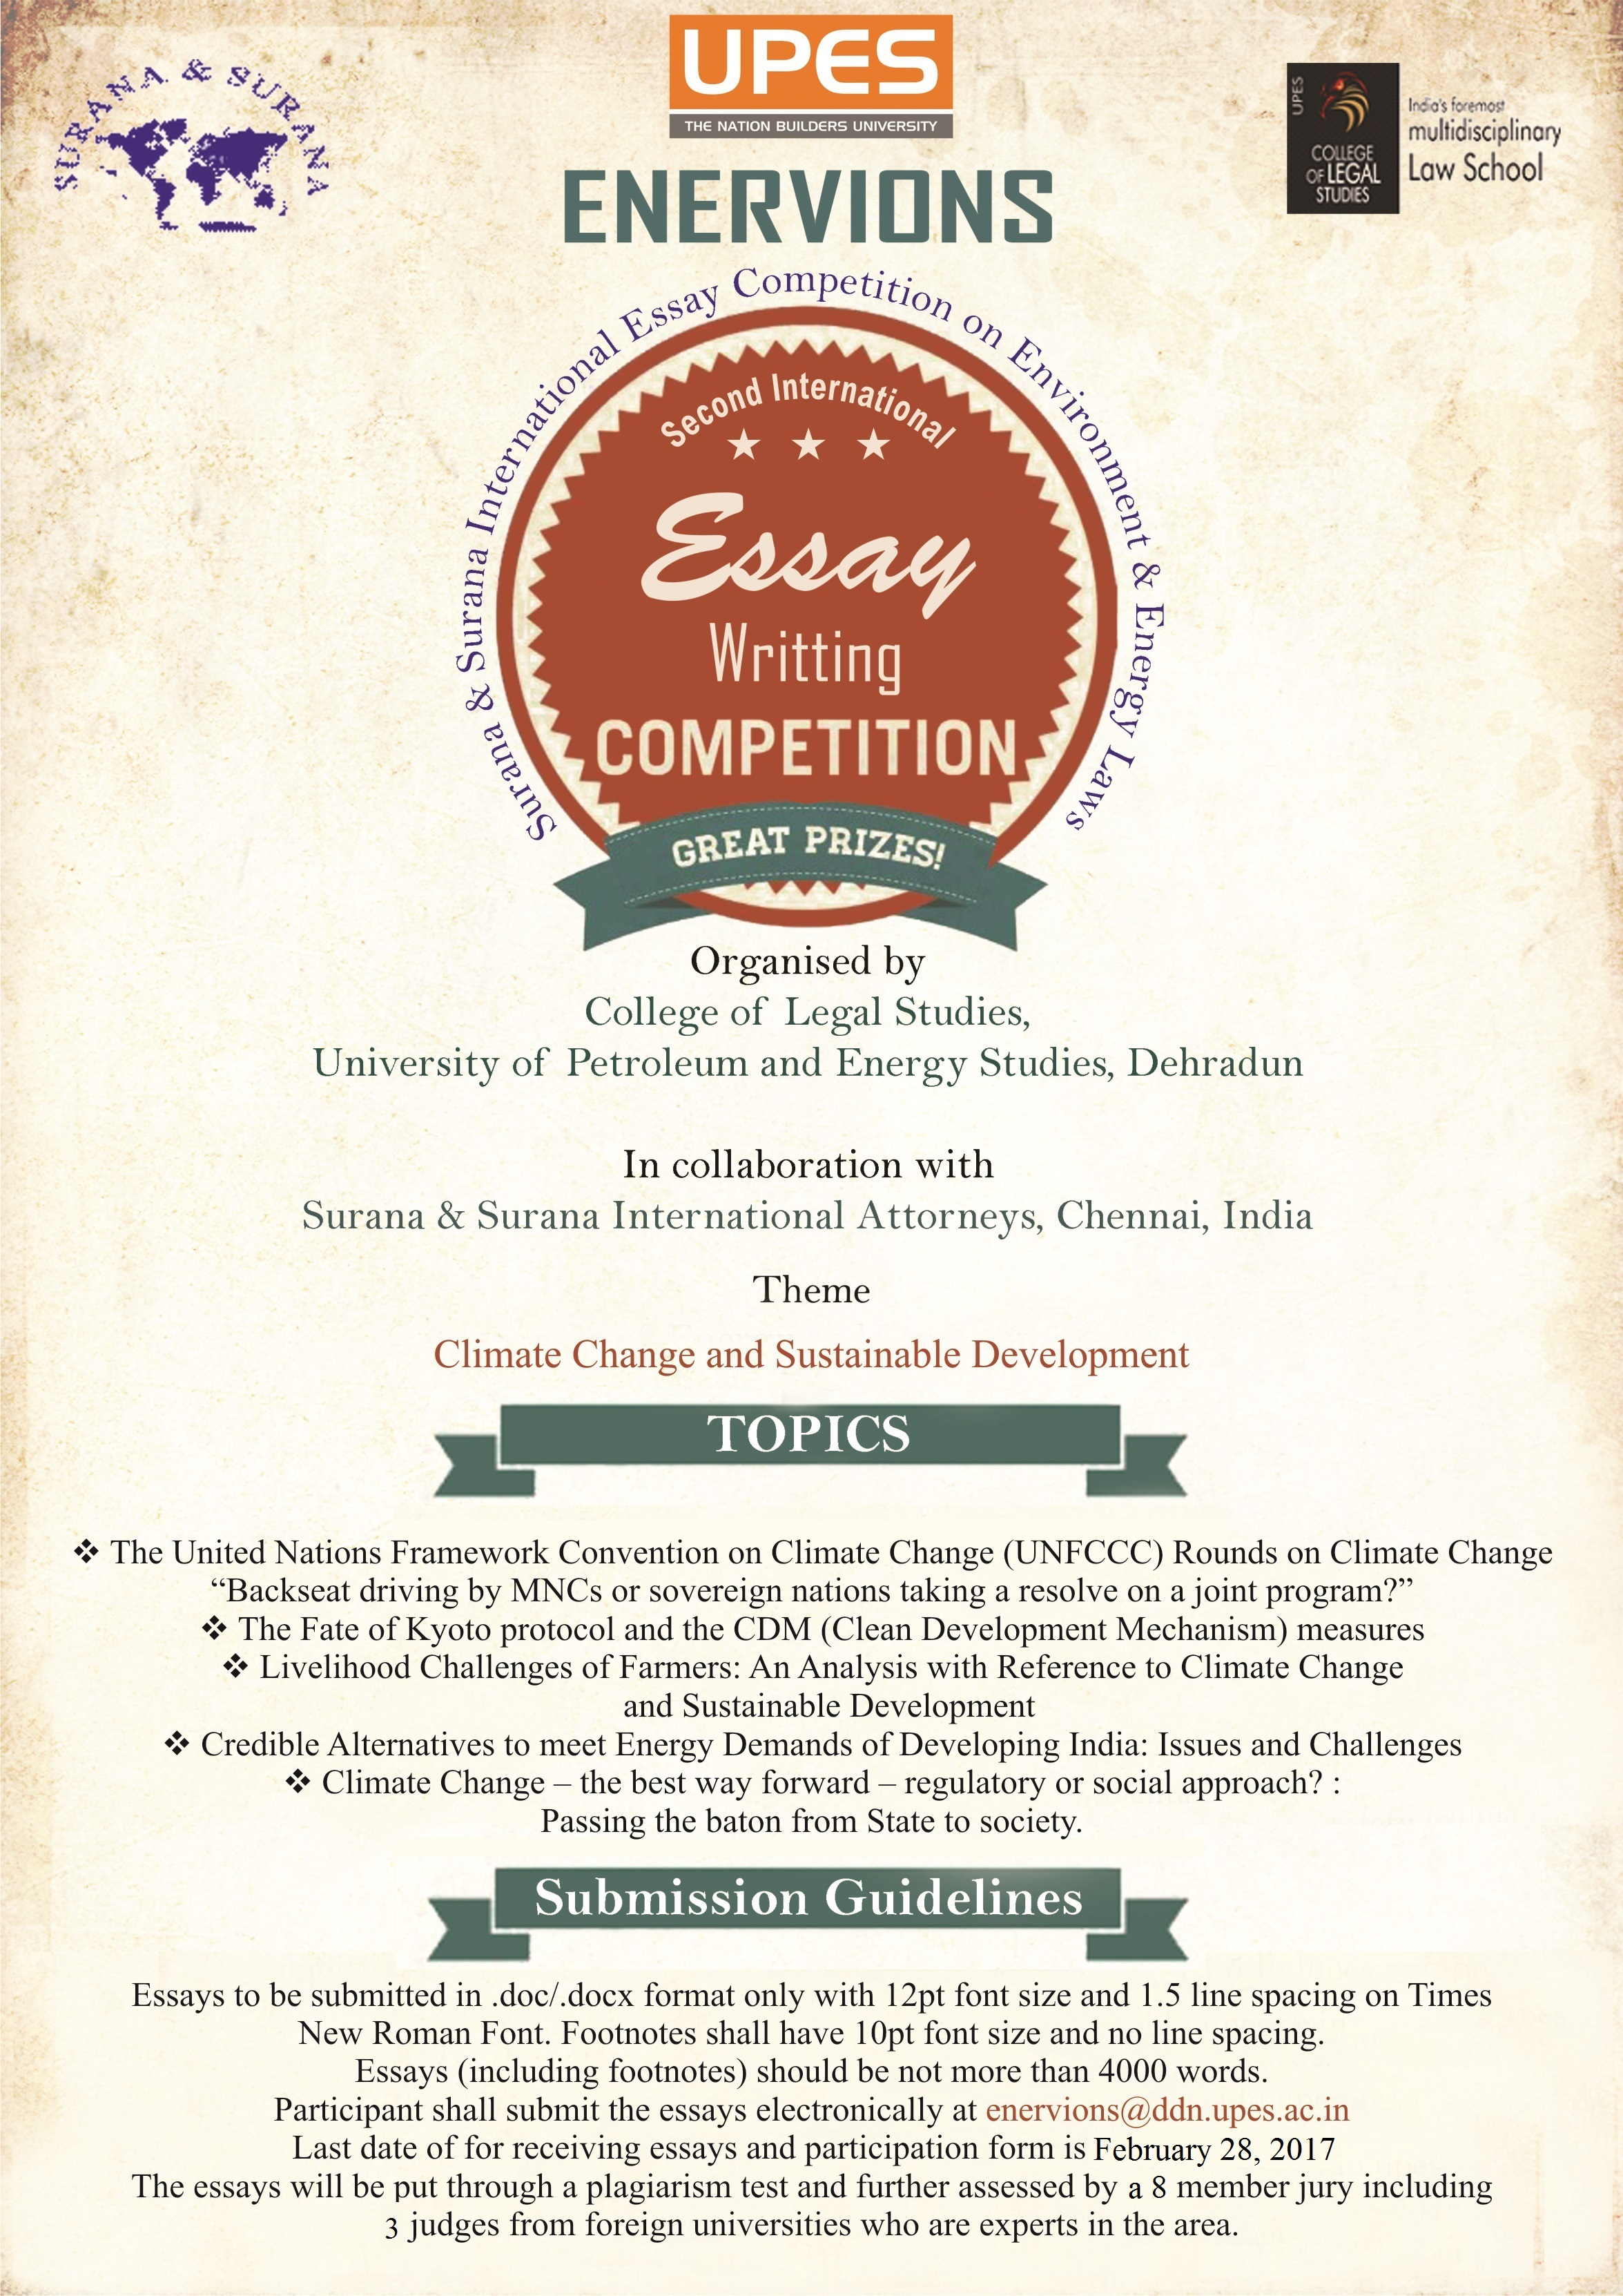 essay competitions archives page 2 of 14  upes 2nd enervions international essay writing competition prizes worth rs 77 000 submit by feb 28